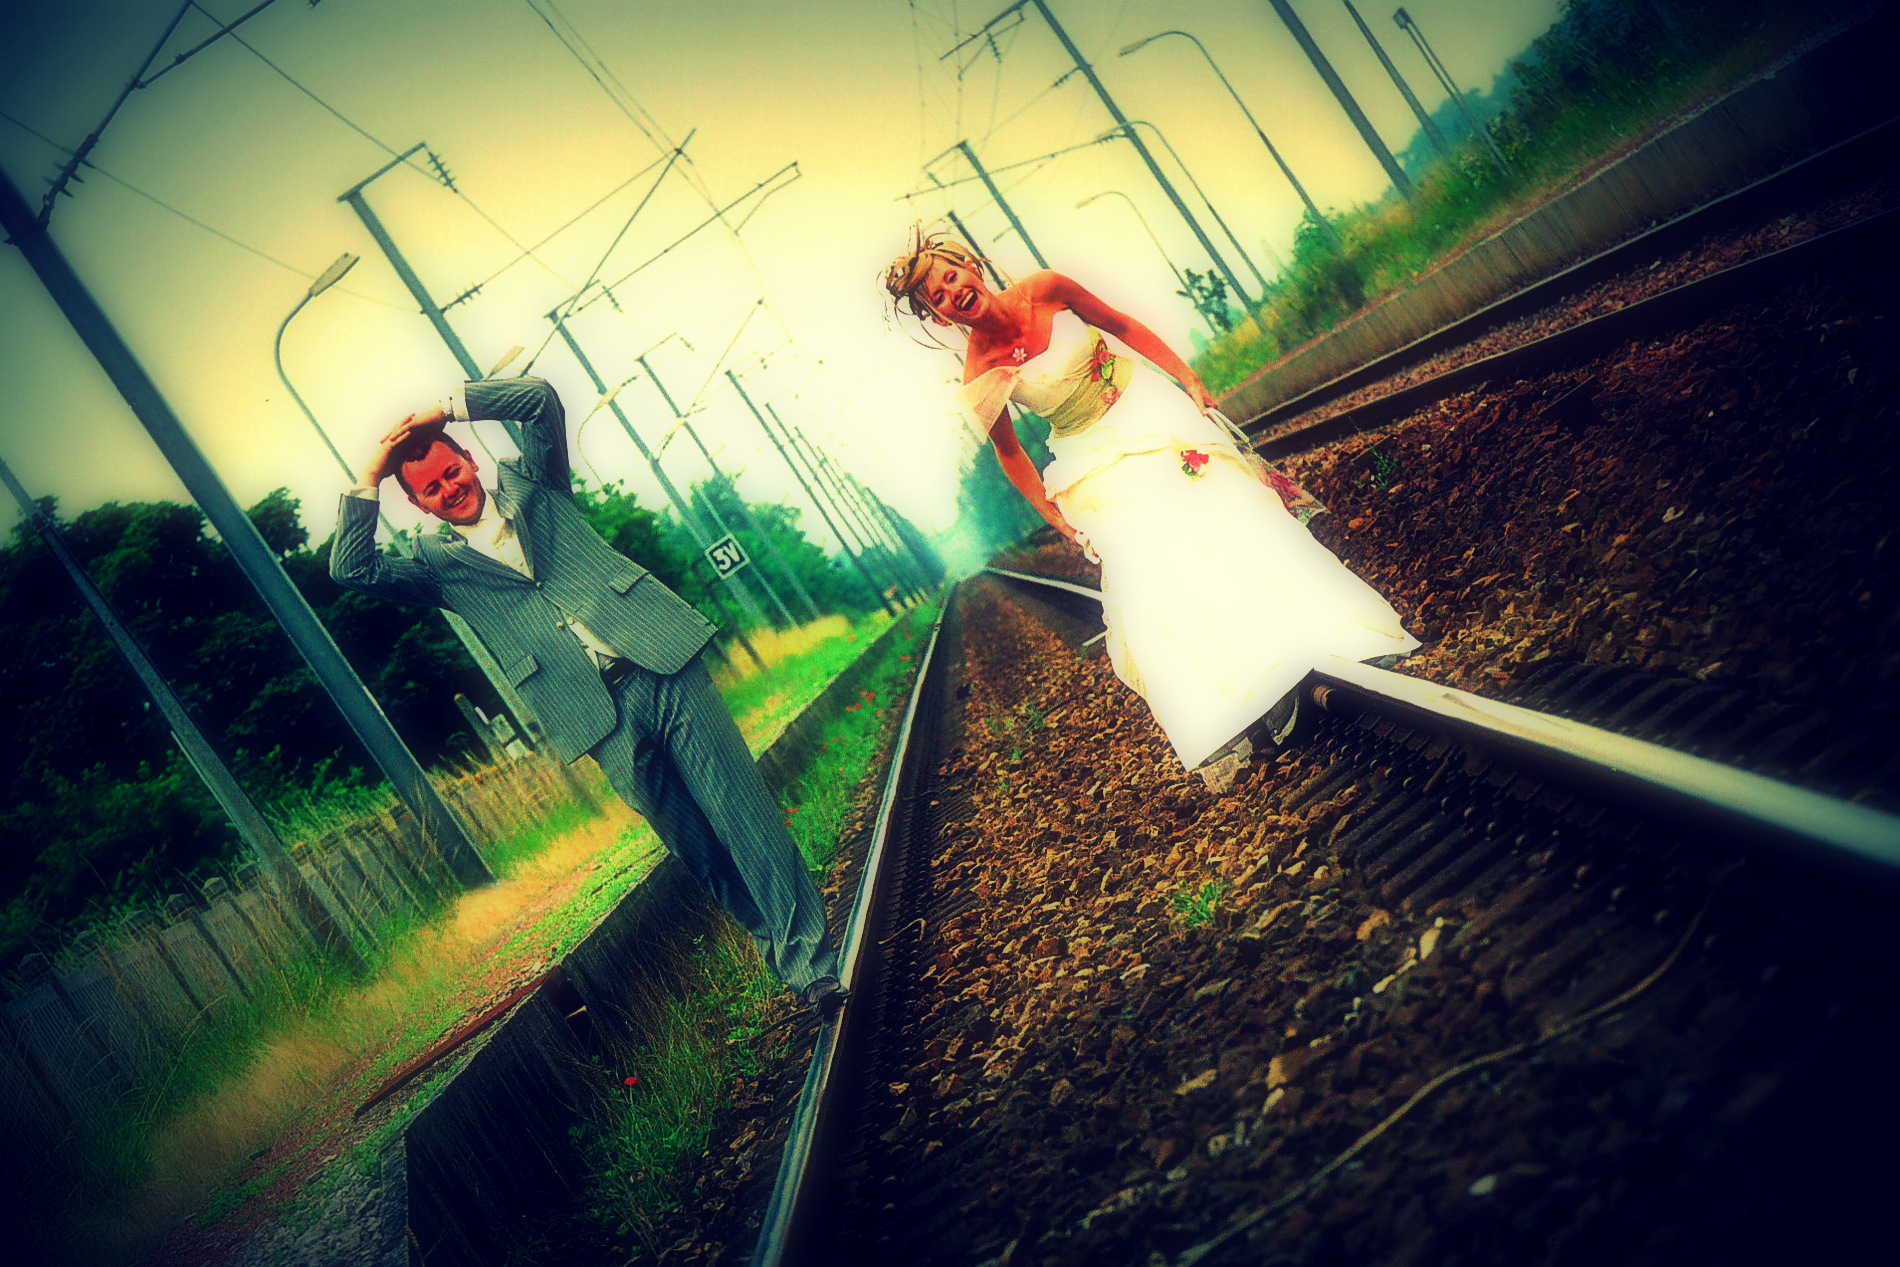 photo originale de mariage